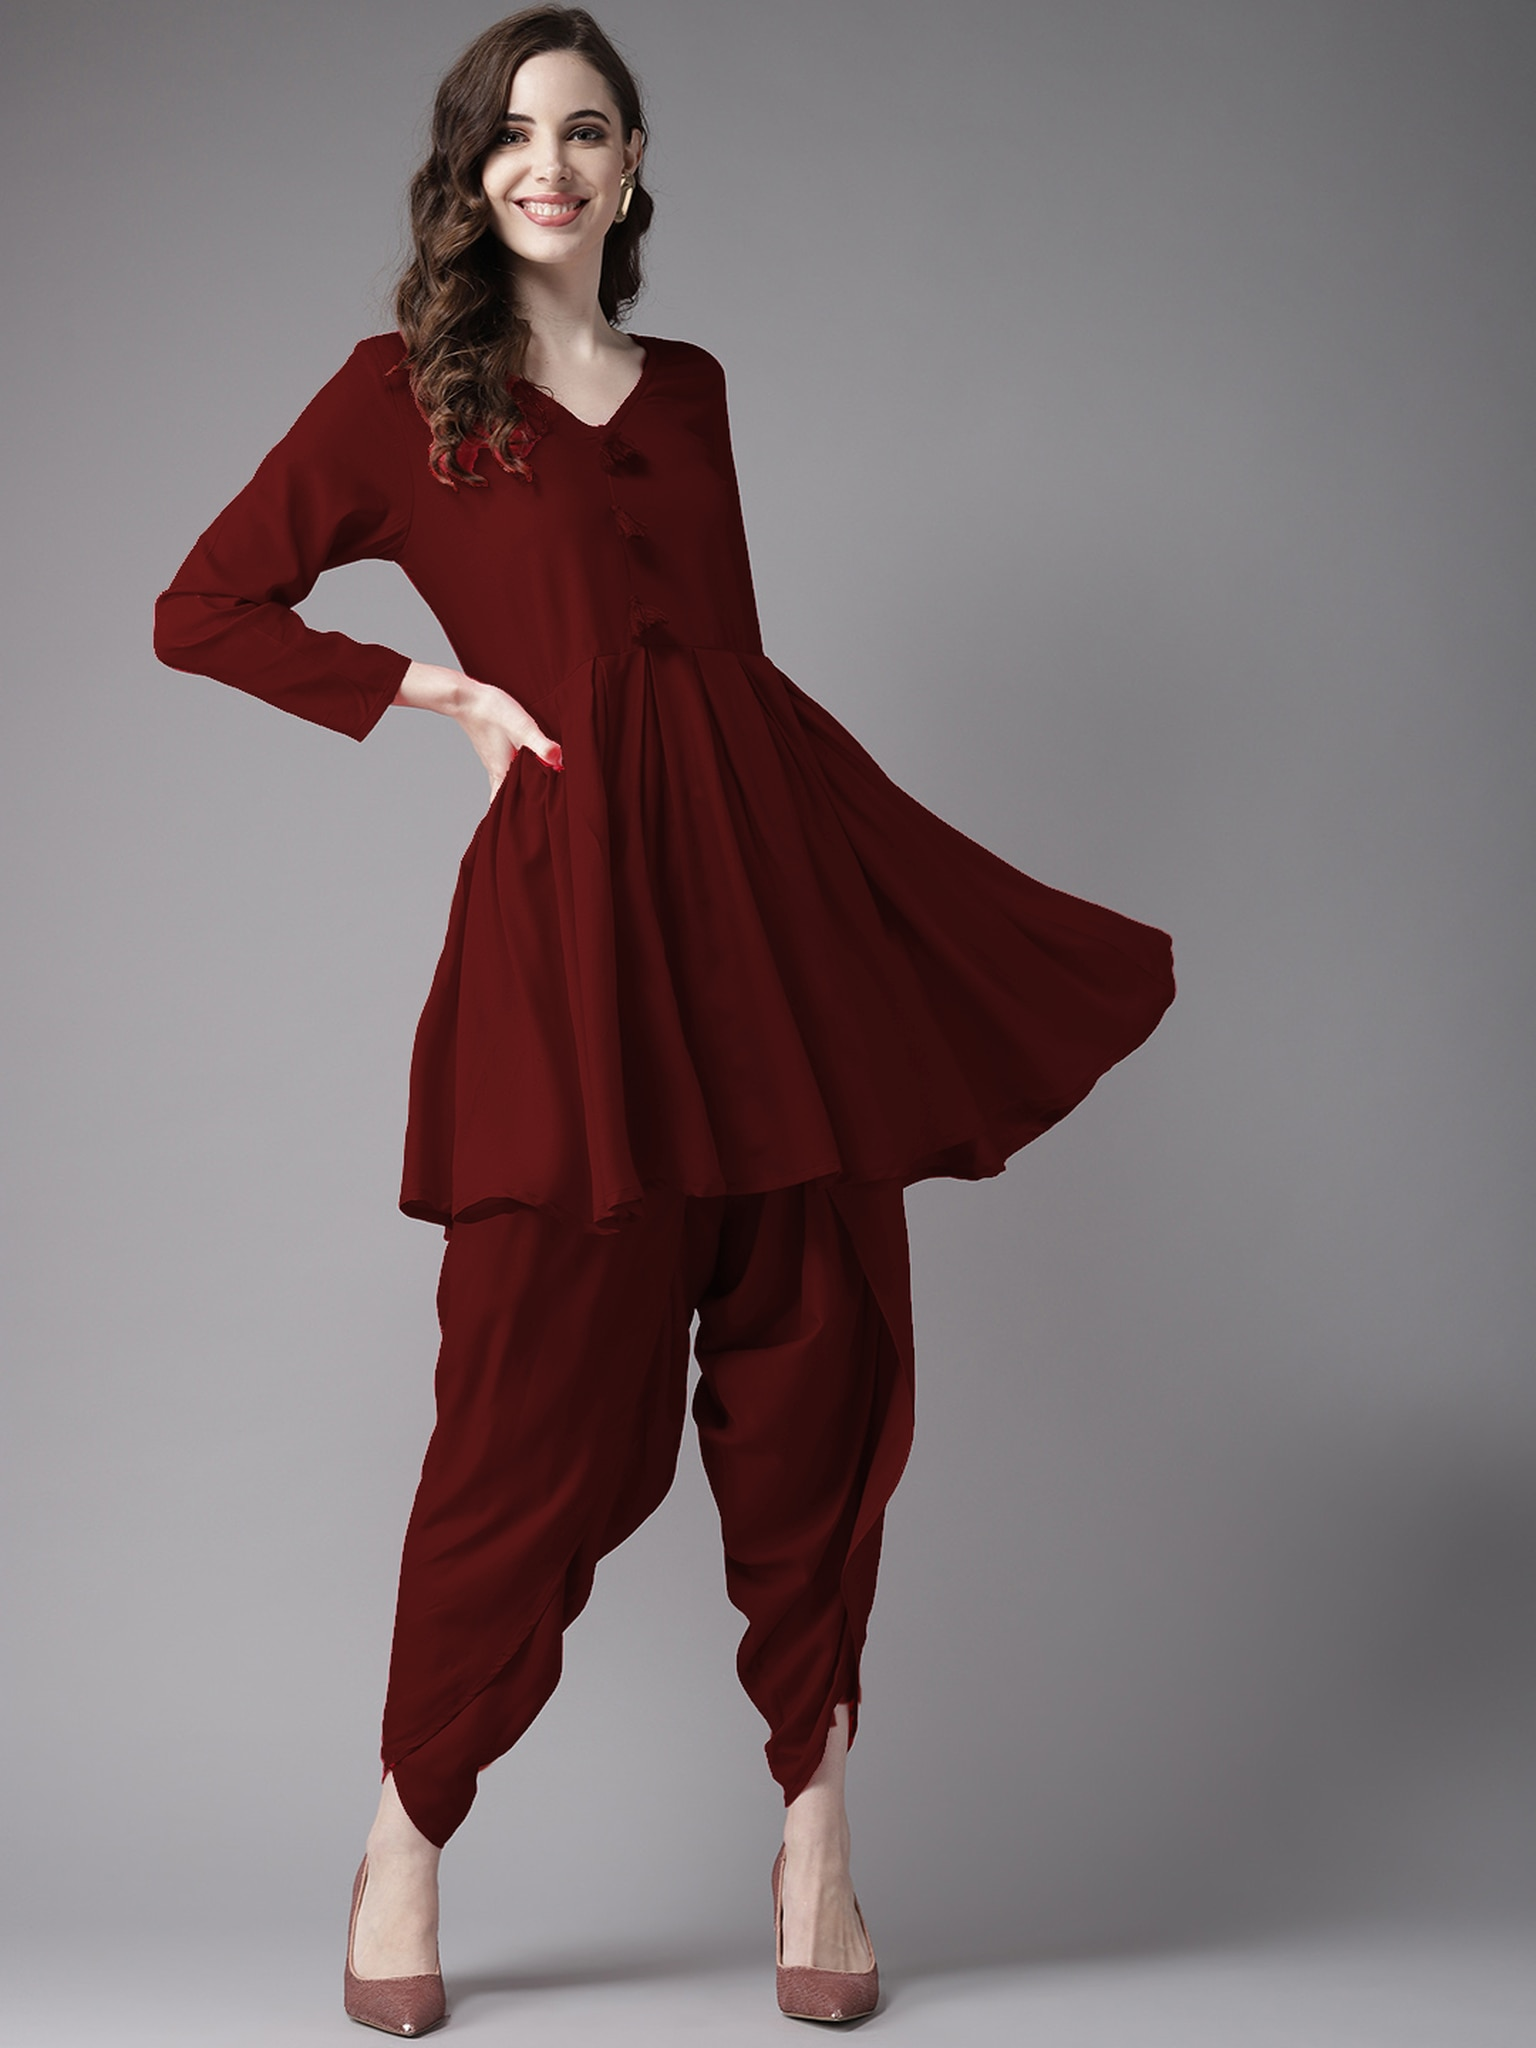 /2019/07/fifth-avenue-womens-tps237-tassel-detail-kurti-and-dhoti-pants-set-maroon-image1.jpeg